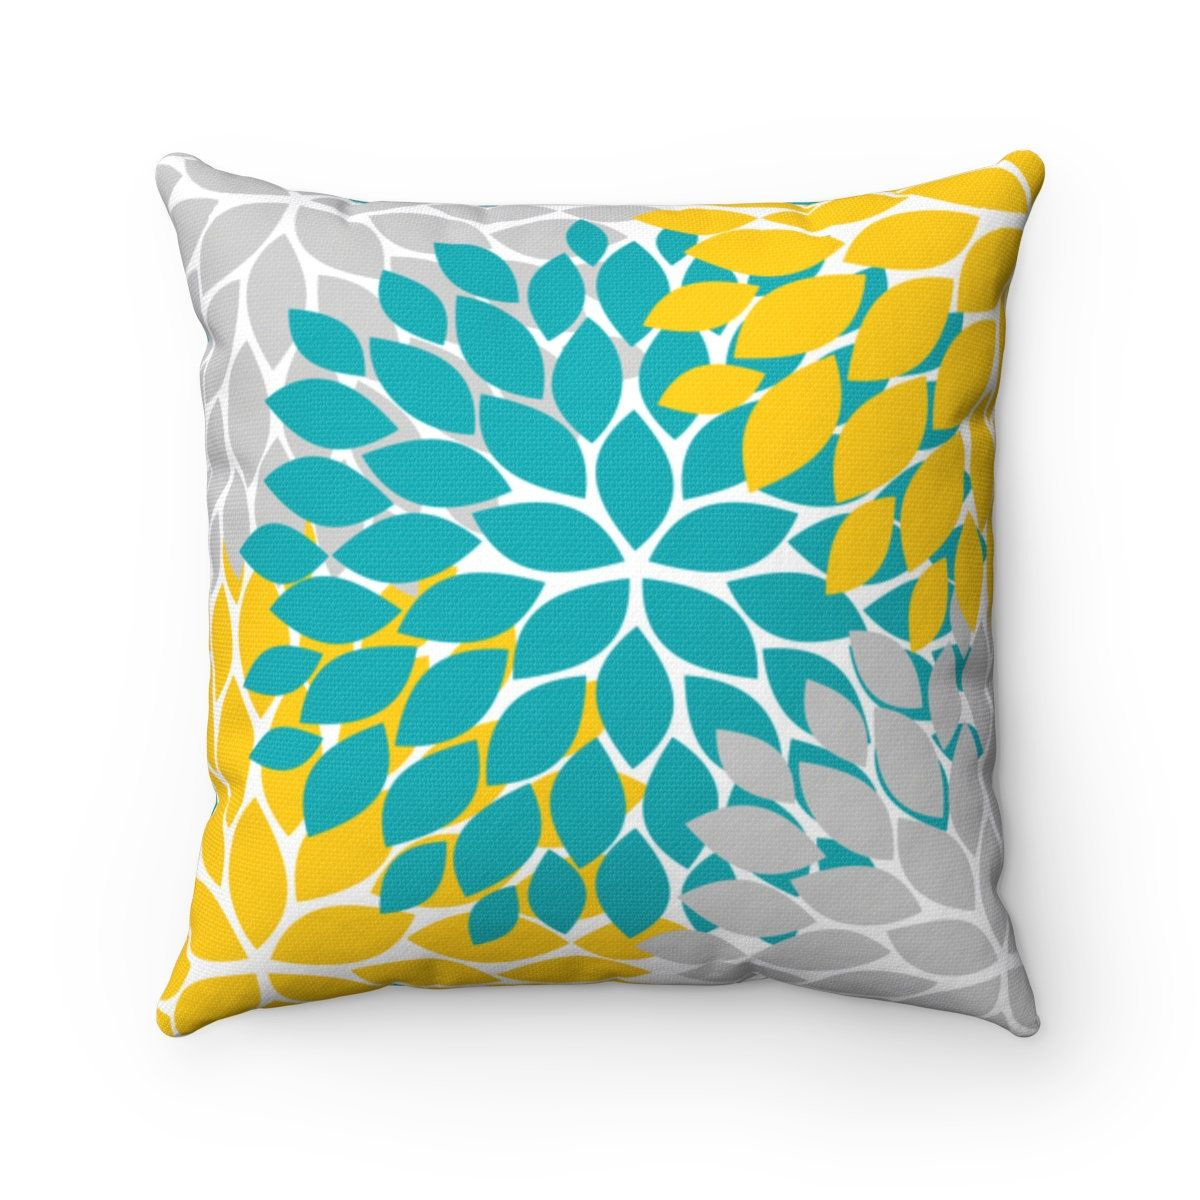 Teal Yellow Gray Flower Pillow Cover Throw Pillow Modern Etsy Teal Yellow Grey Teal Yellow Flower Pillow